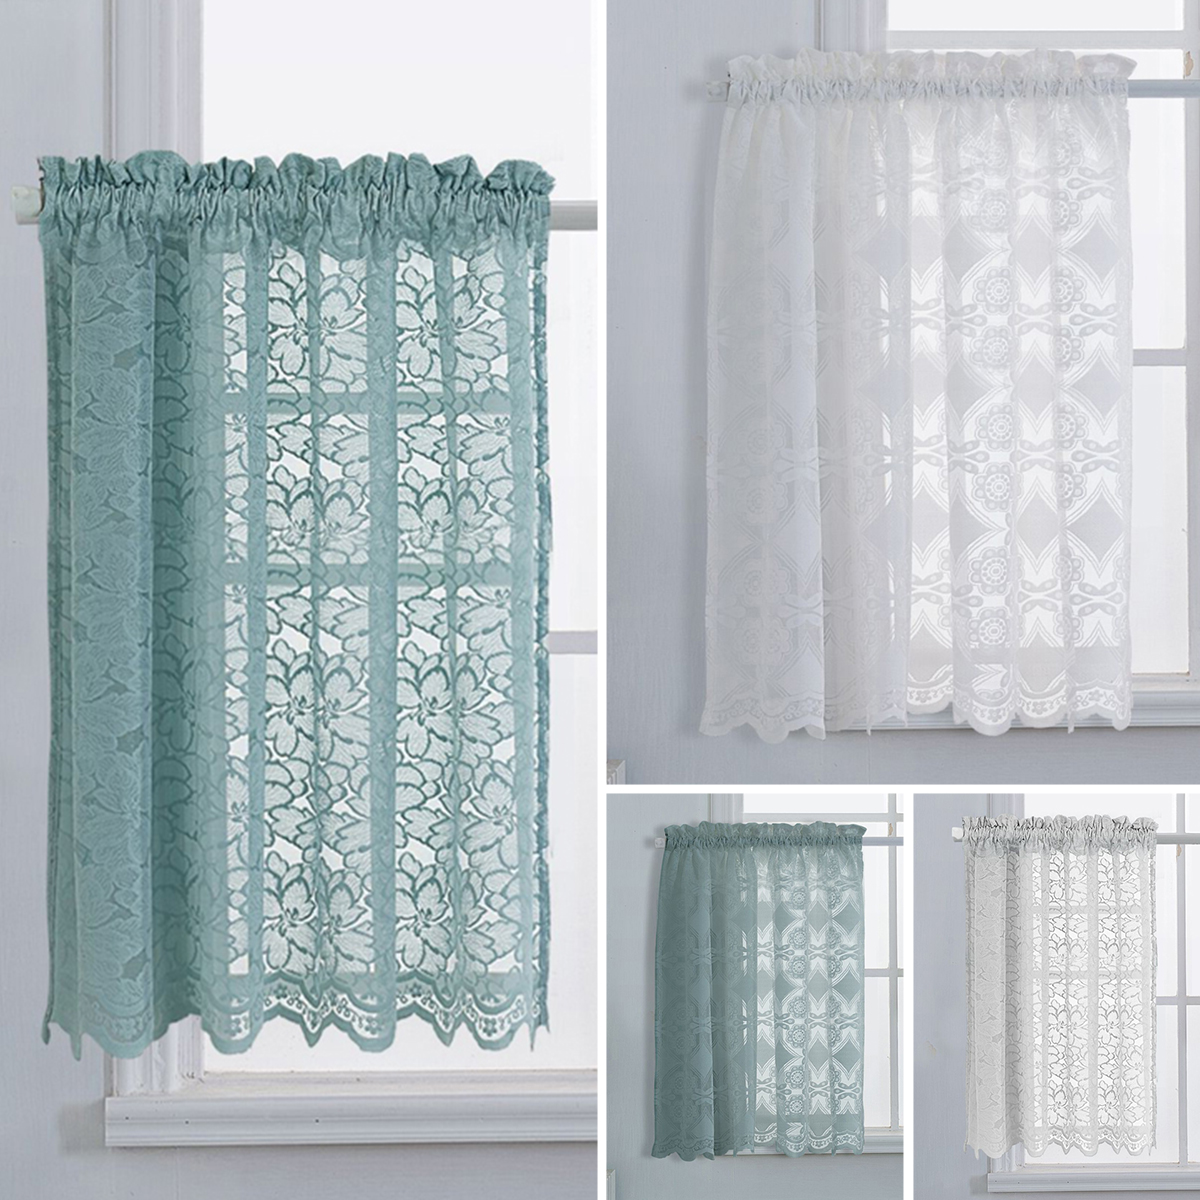 Lace Kitchen Cafe Short Curtains Sheer Voile Tulle Drapes Blinds Panel Net Scarf Ebay